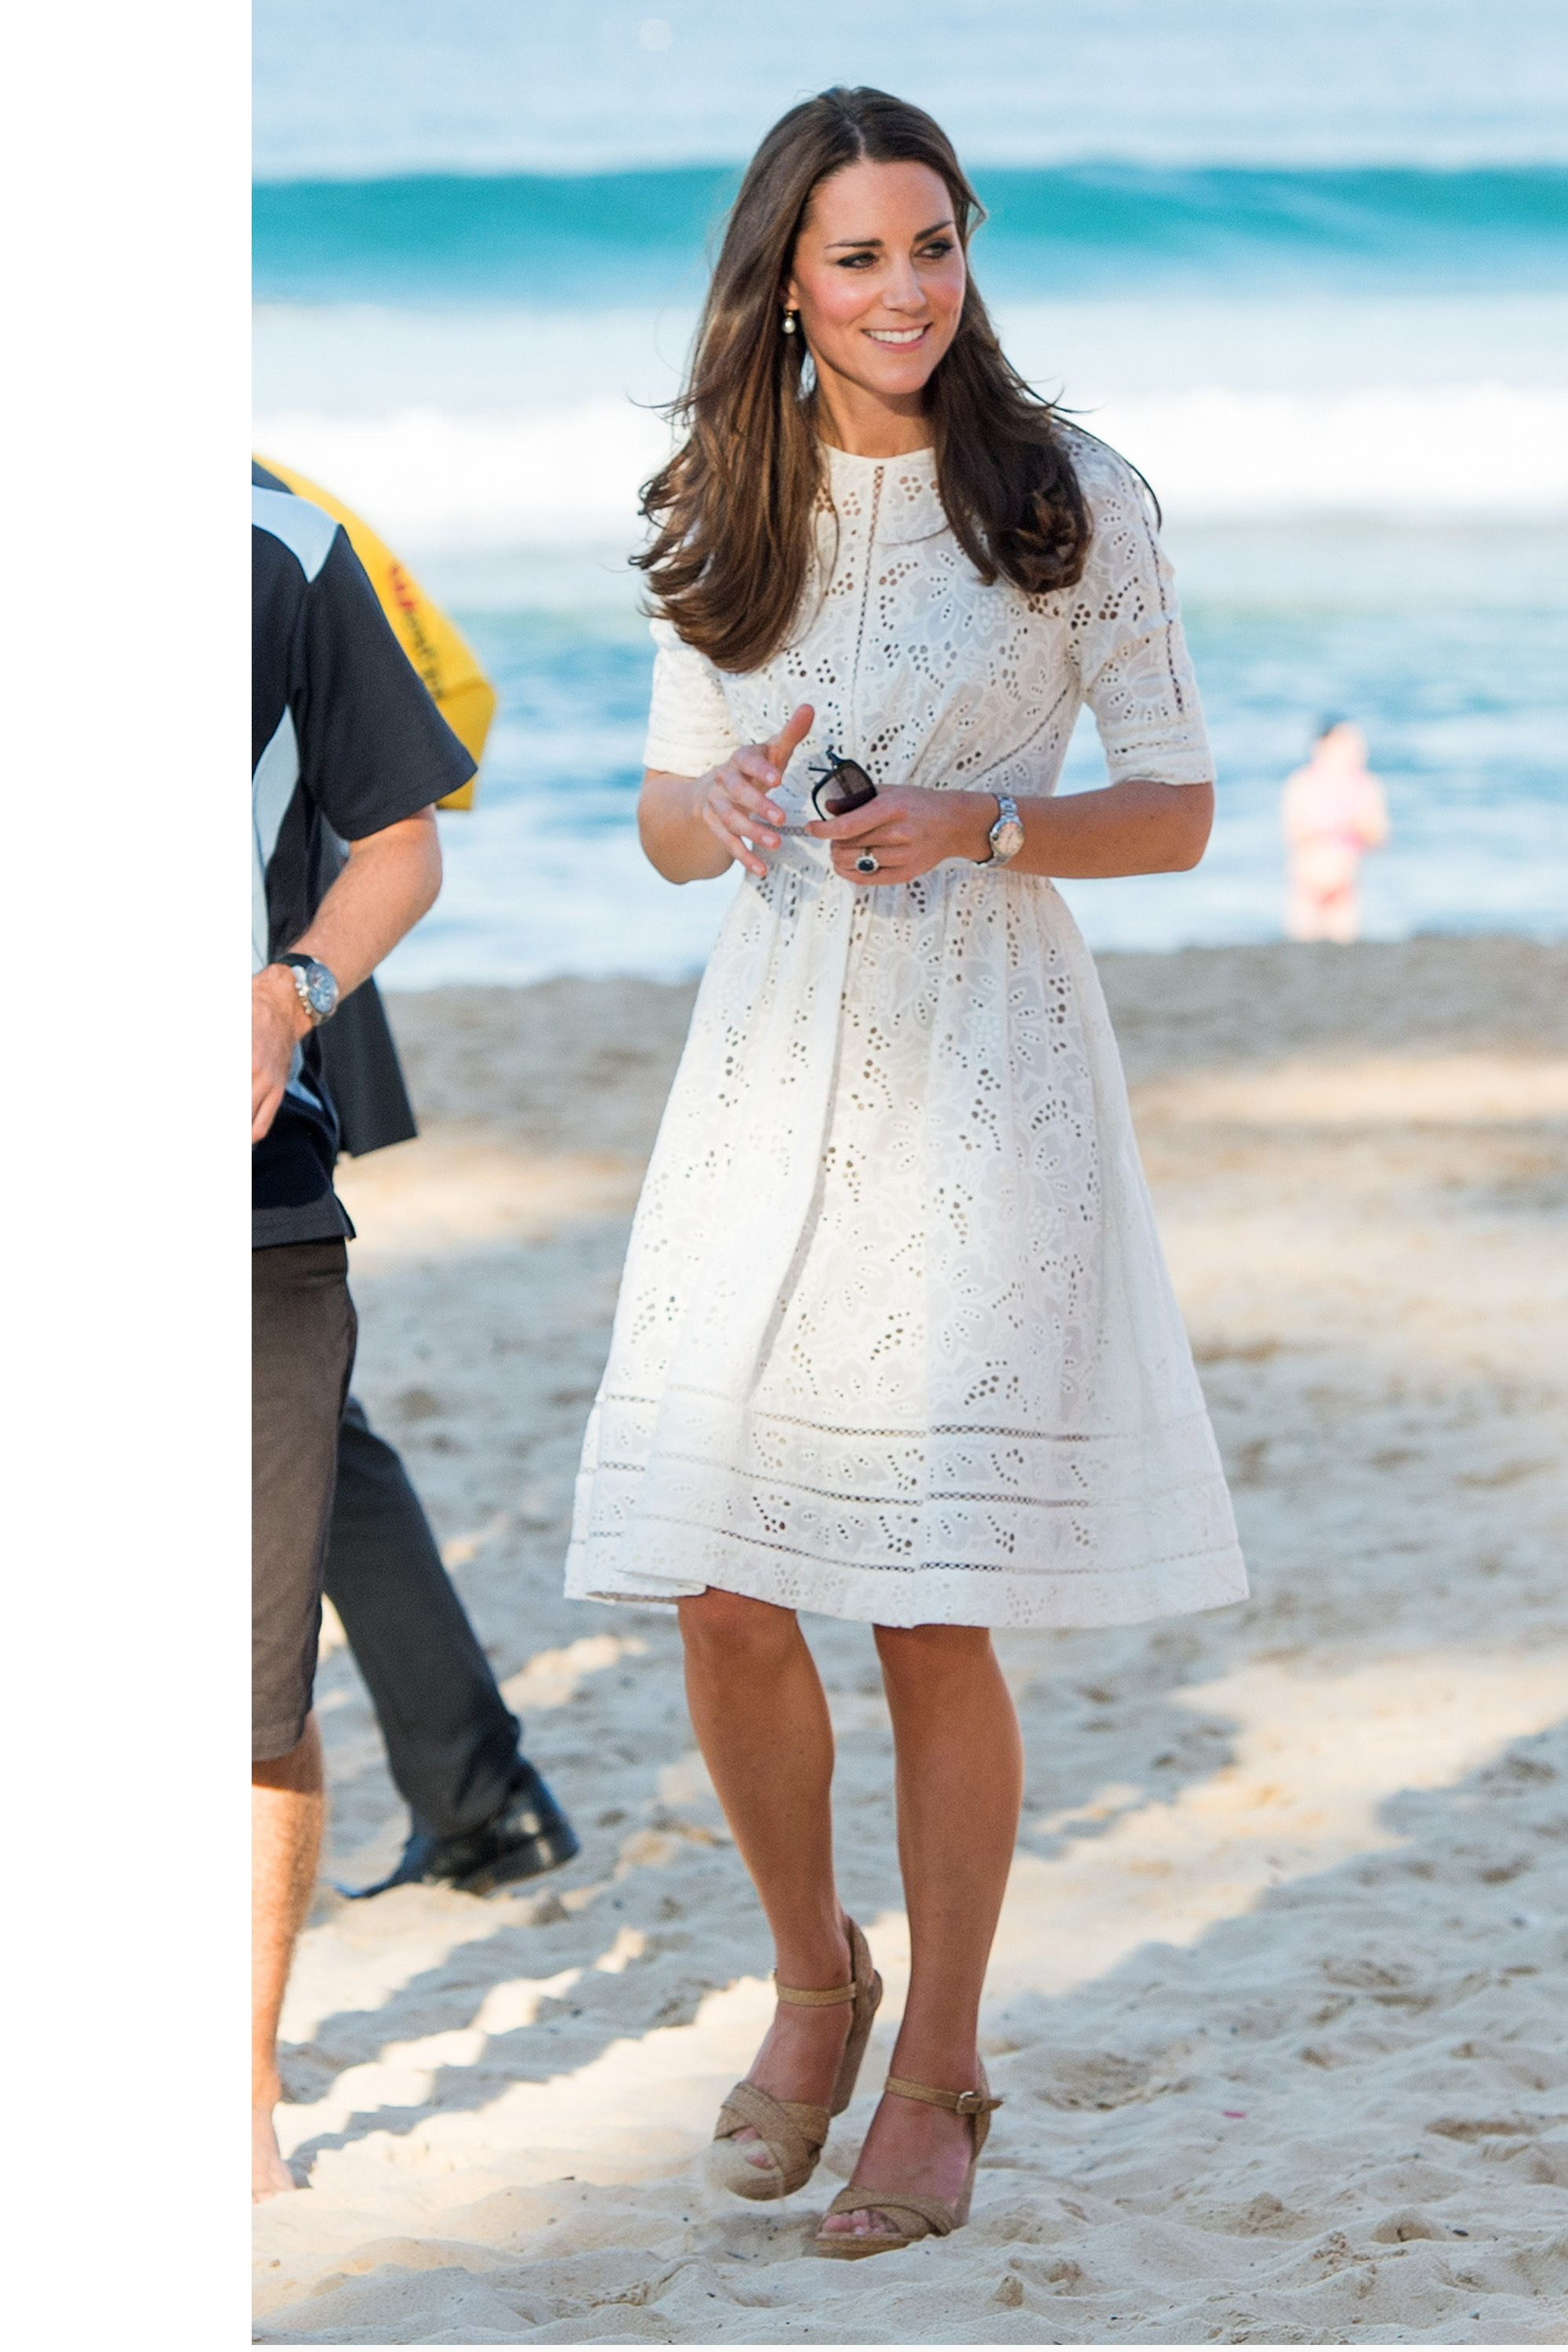 Kate Middleton Continues Her Colored Coat Streak Manly Beach Zimmerman And Kate Middleton